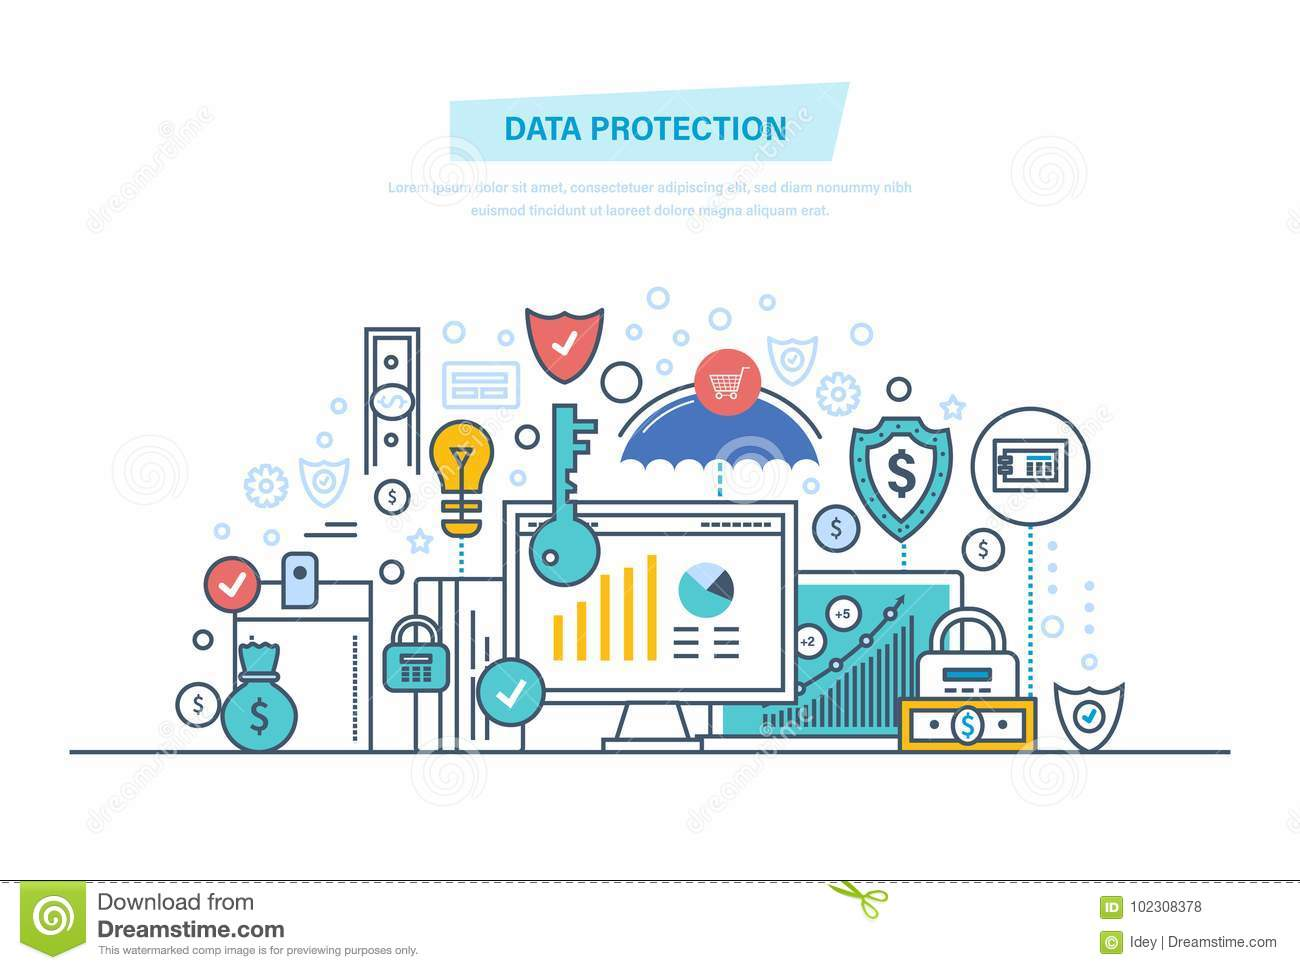 Data Information Security Protection Antivirus Software Privacy Safe Confidential Finance